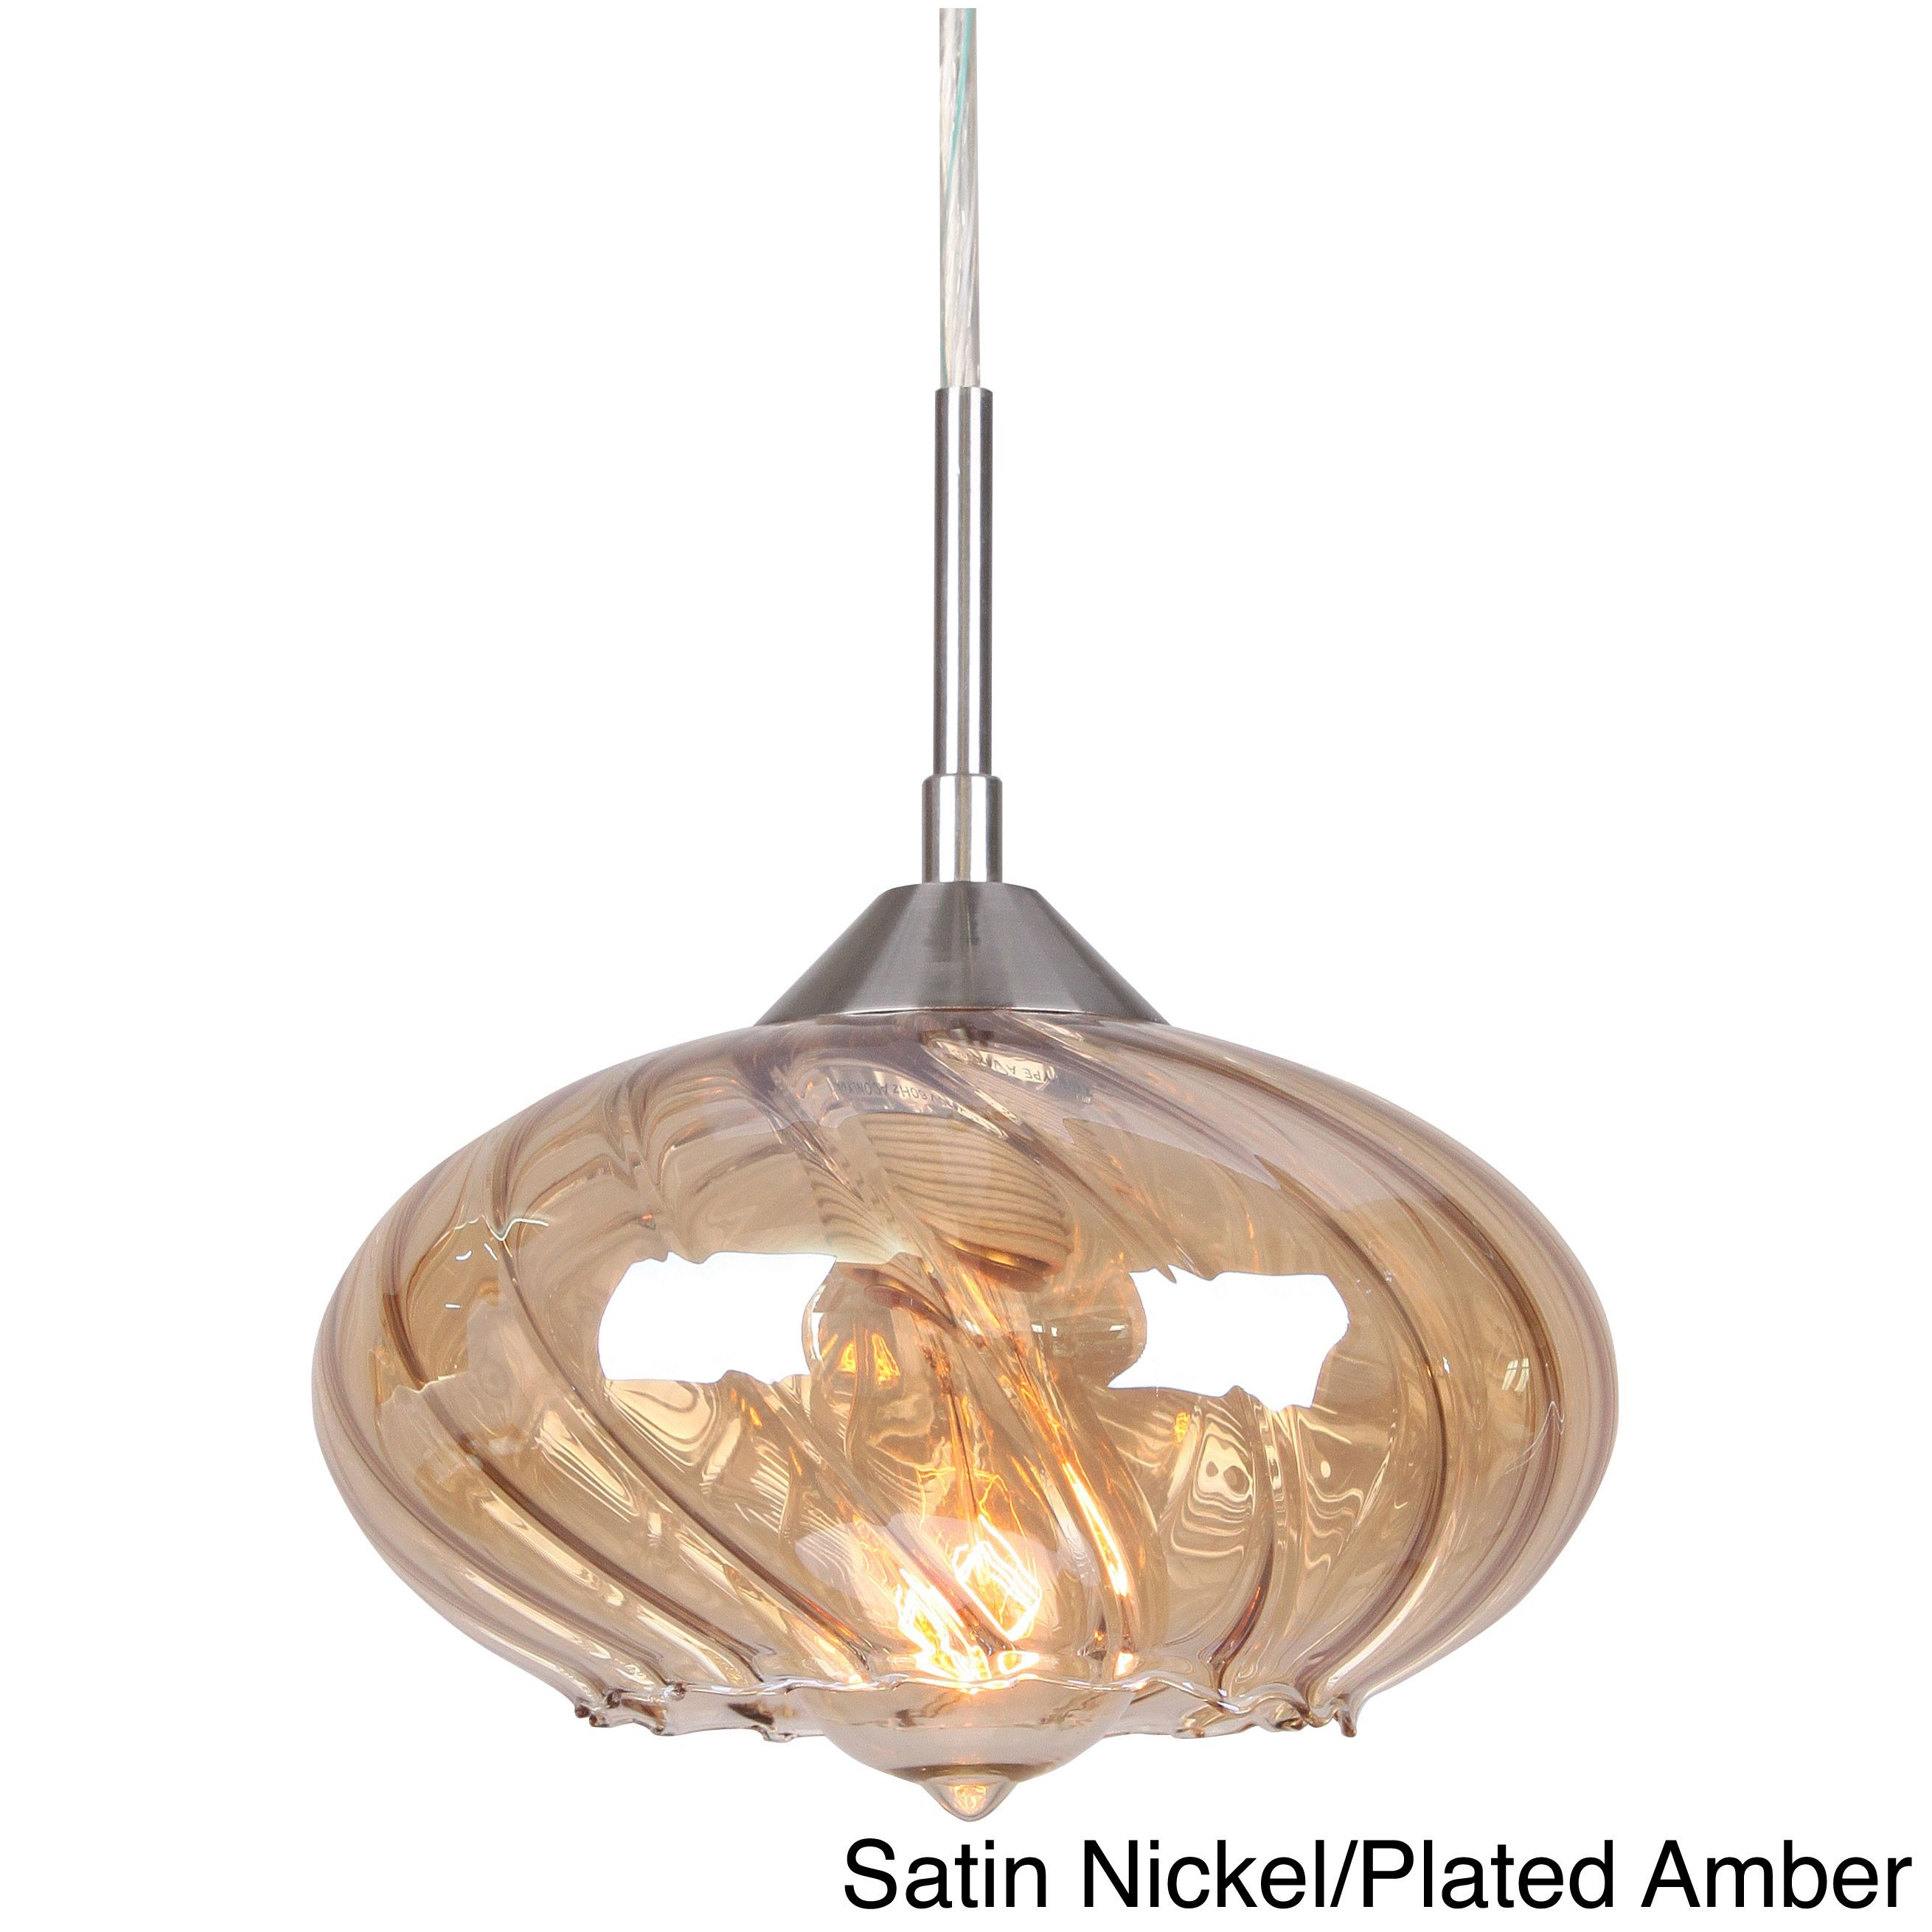 An Elegant Way To Add Lighting Your Home This Contemporary Mini Pendant Light Fixture Decorative Electrical Wiring Will Sophistication Decor The Shade Is Designed With Curved